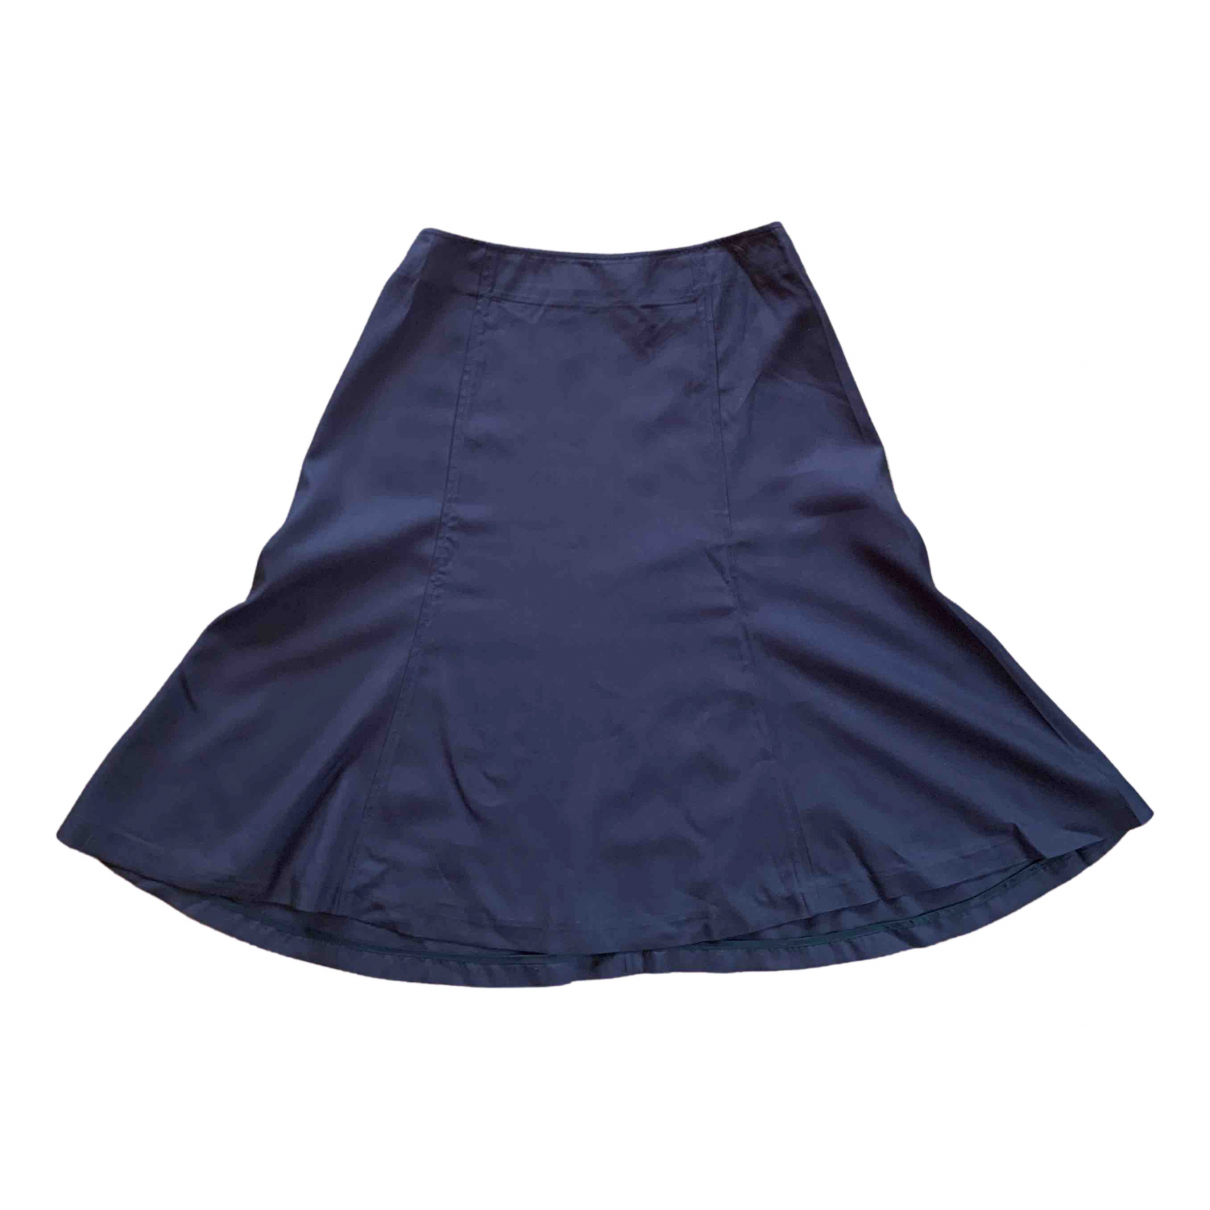 Prada \N Navy Silk skirt for Women 40 IT